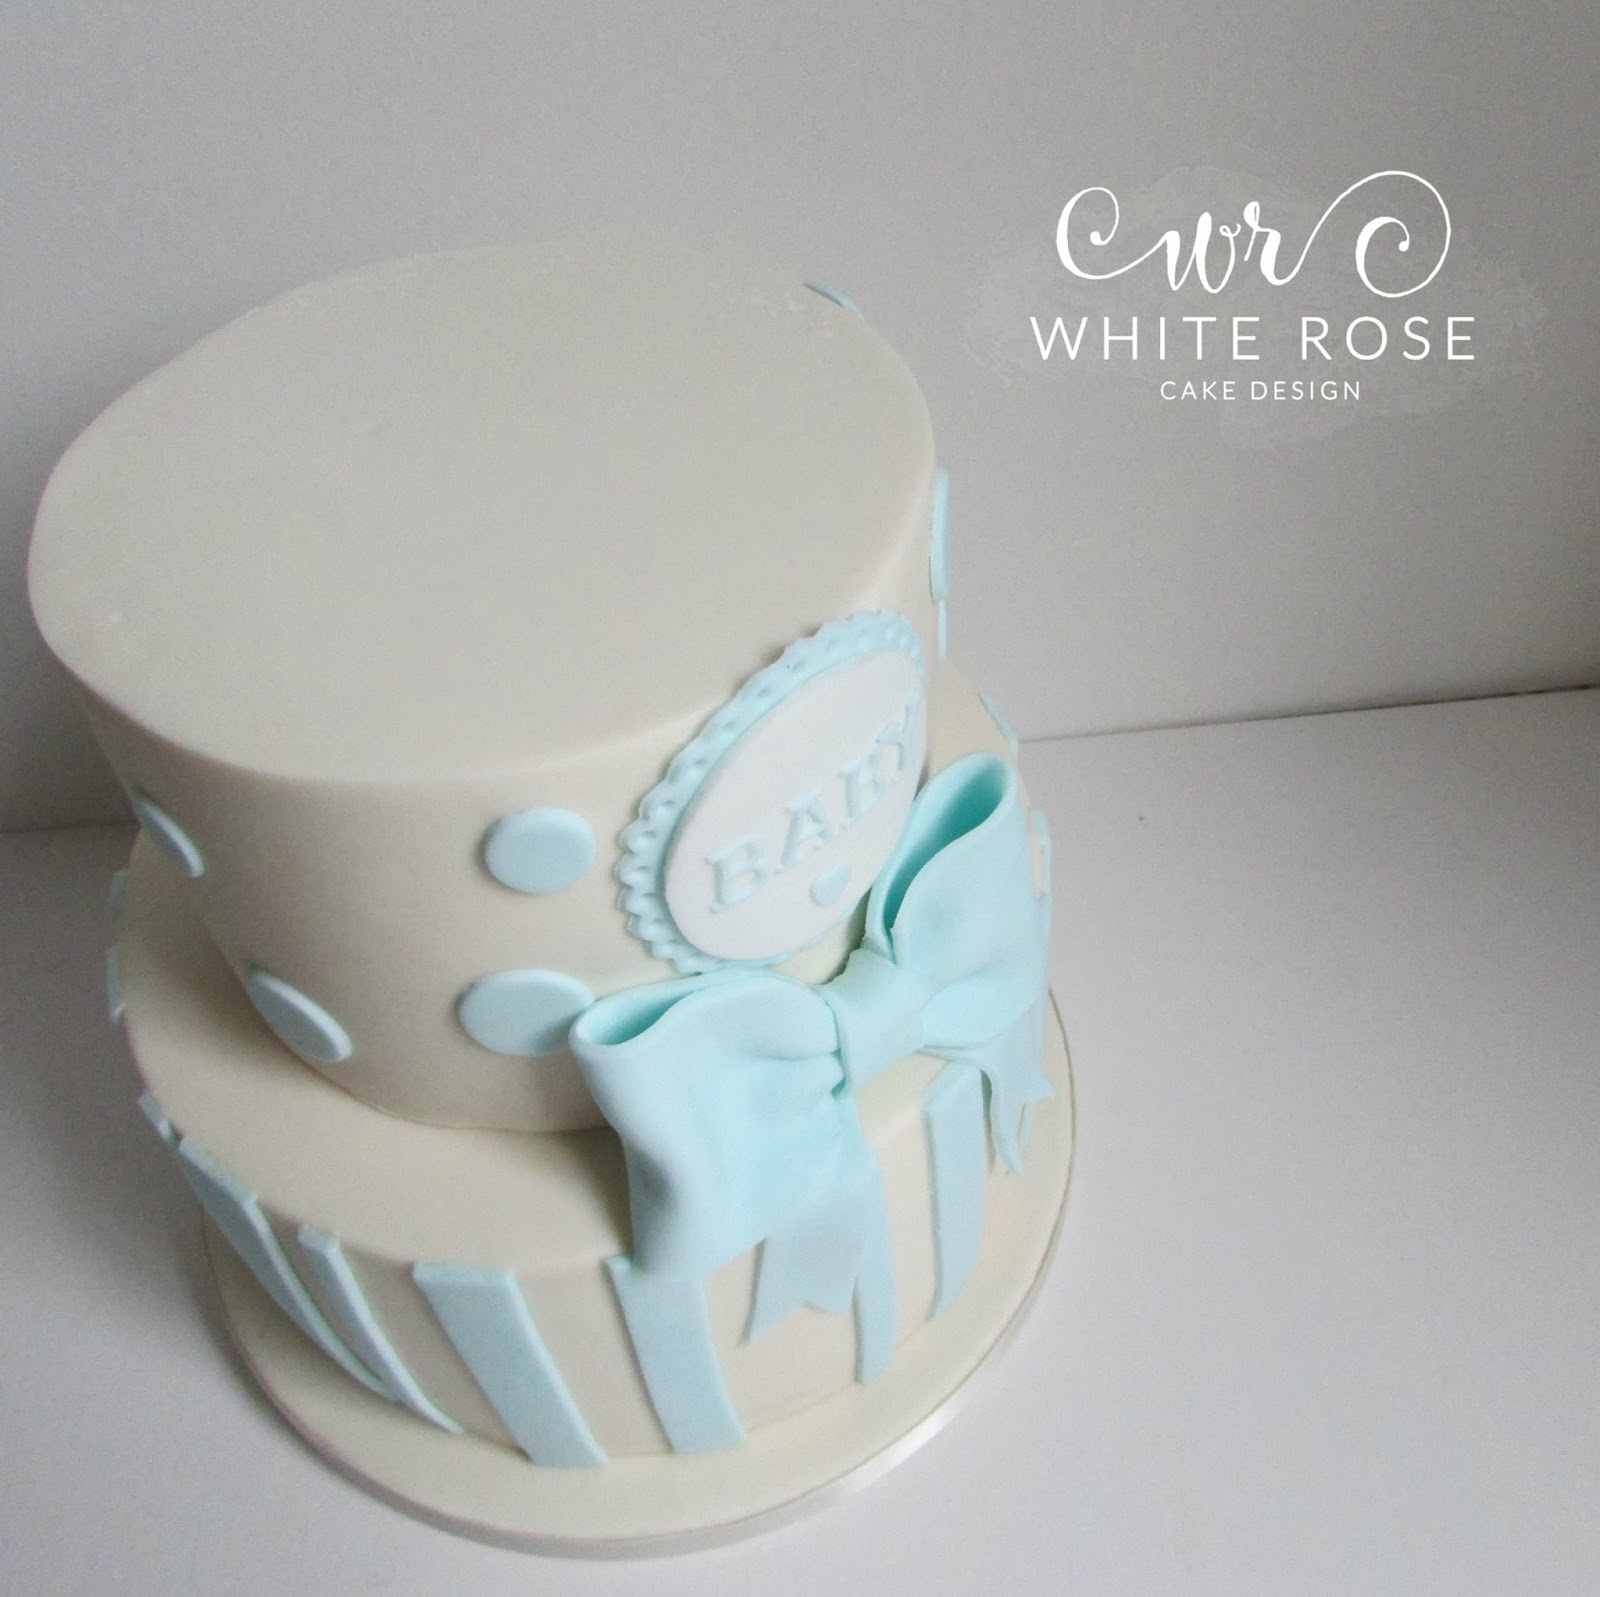 It S A Boy Baby Shower Tiered Cake White Rose Cake Design